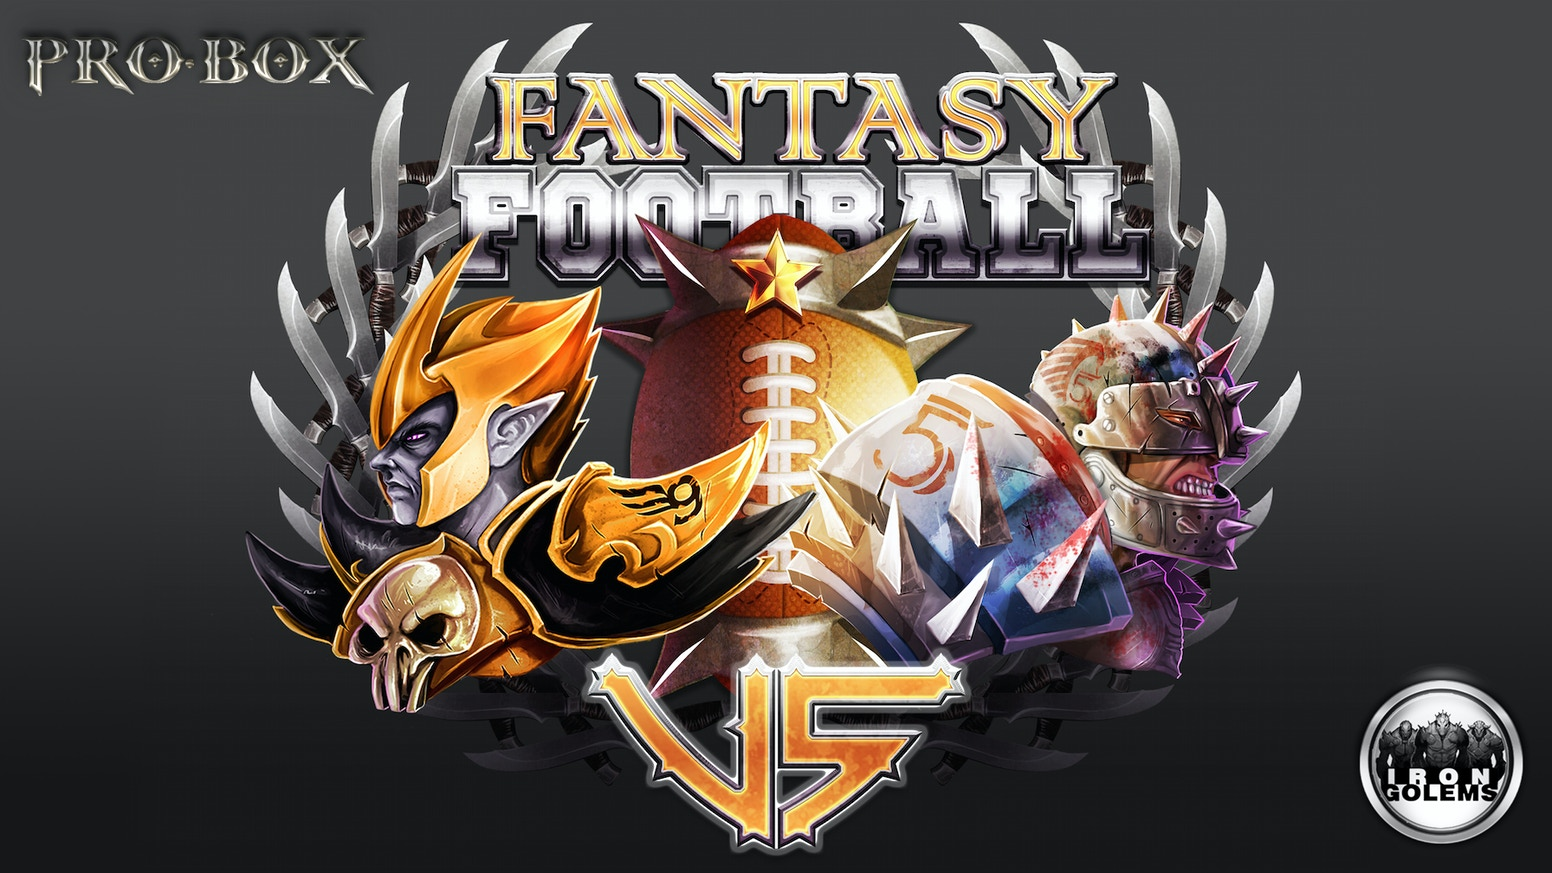 Two teams, a pitch, and all you need to play Fantasy Football games in a spectacular and functional case!For a limited time we open the possibility of a late pledge for those who could not arrive in time!